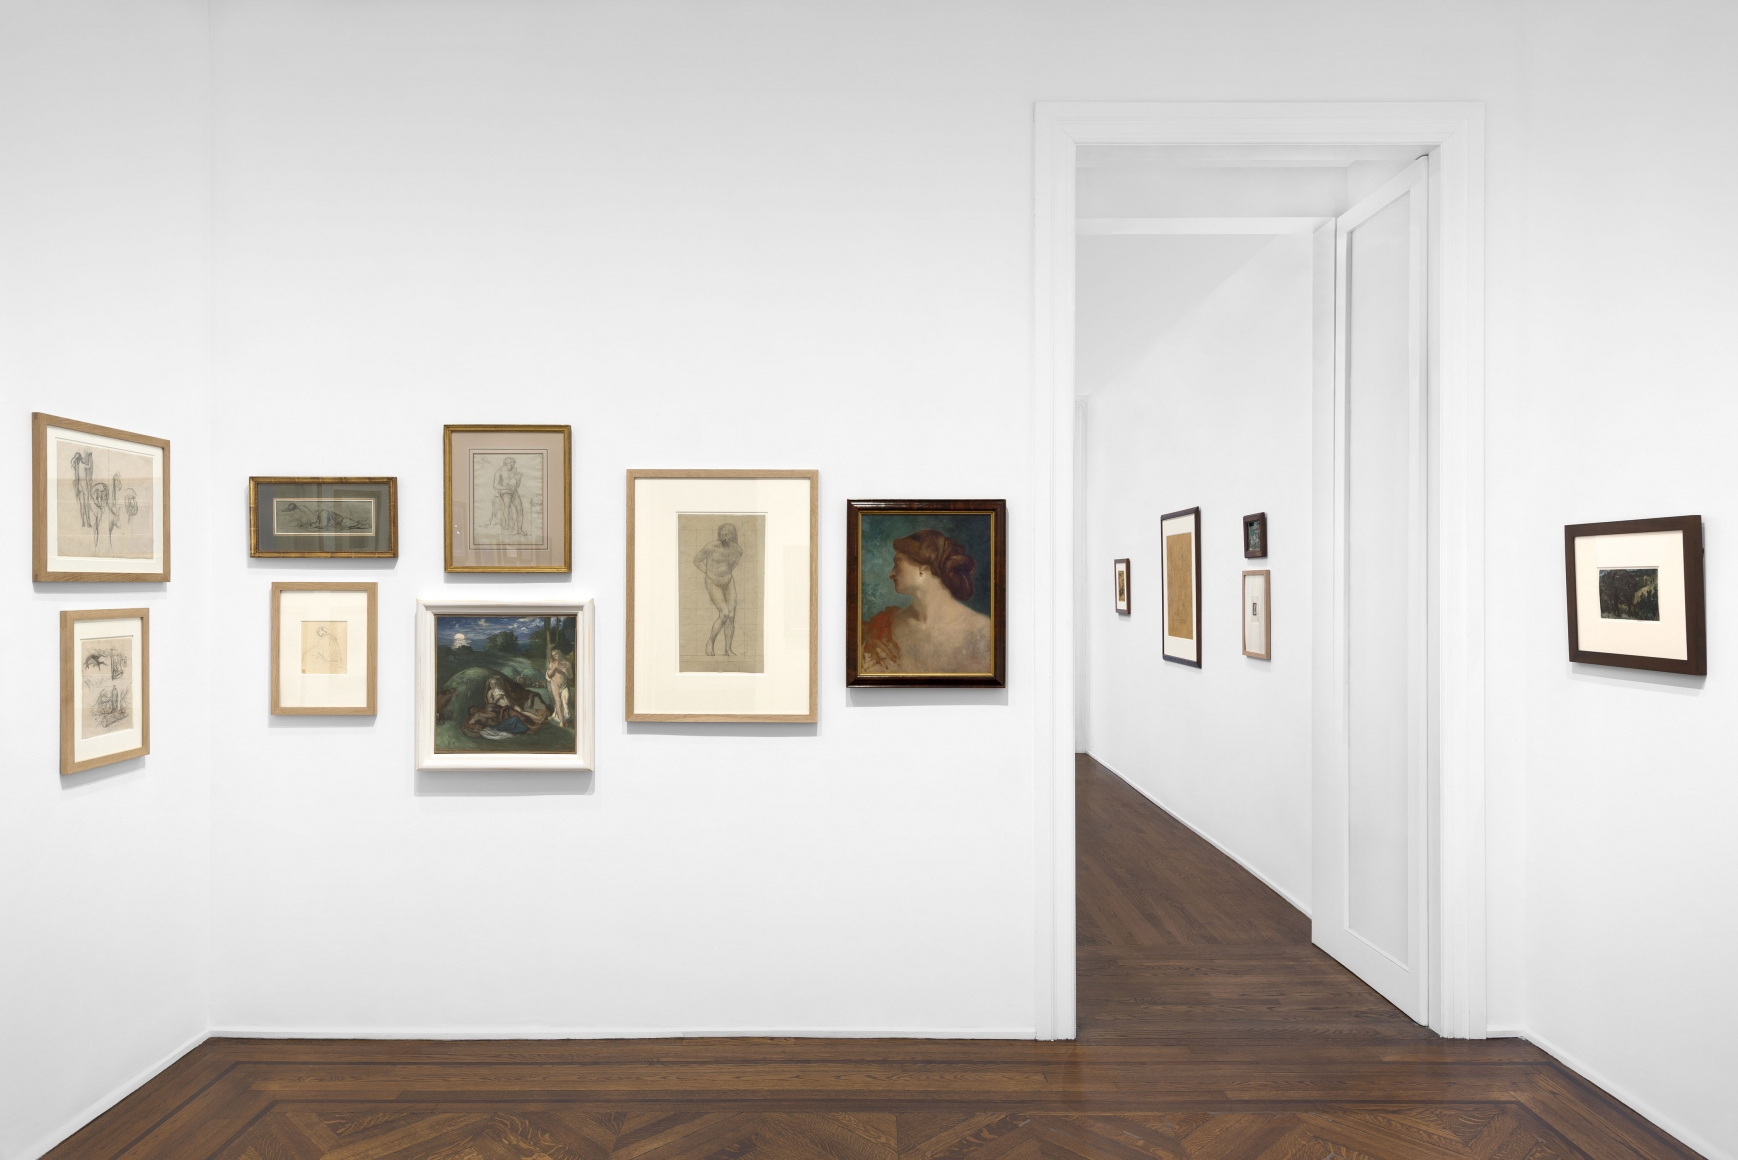 PIERRE PUVIS DE CHAVANNES, Works on Paper and Paintings, New York, 2018, Installation Image 9